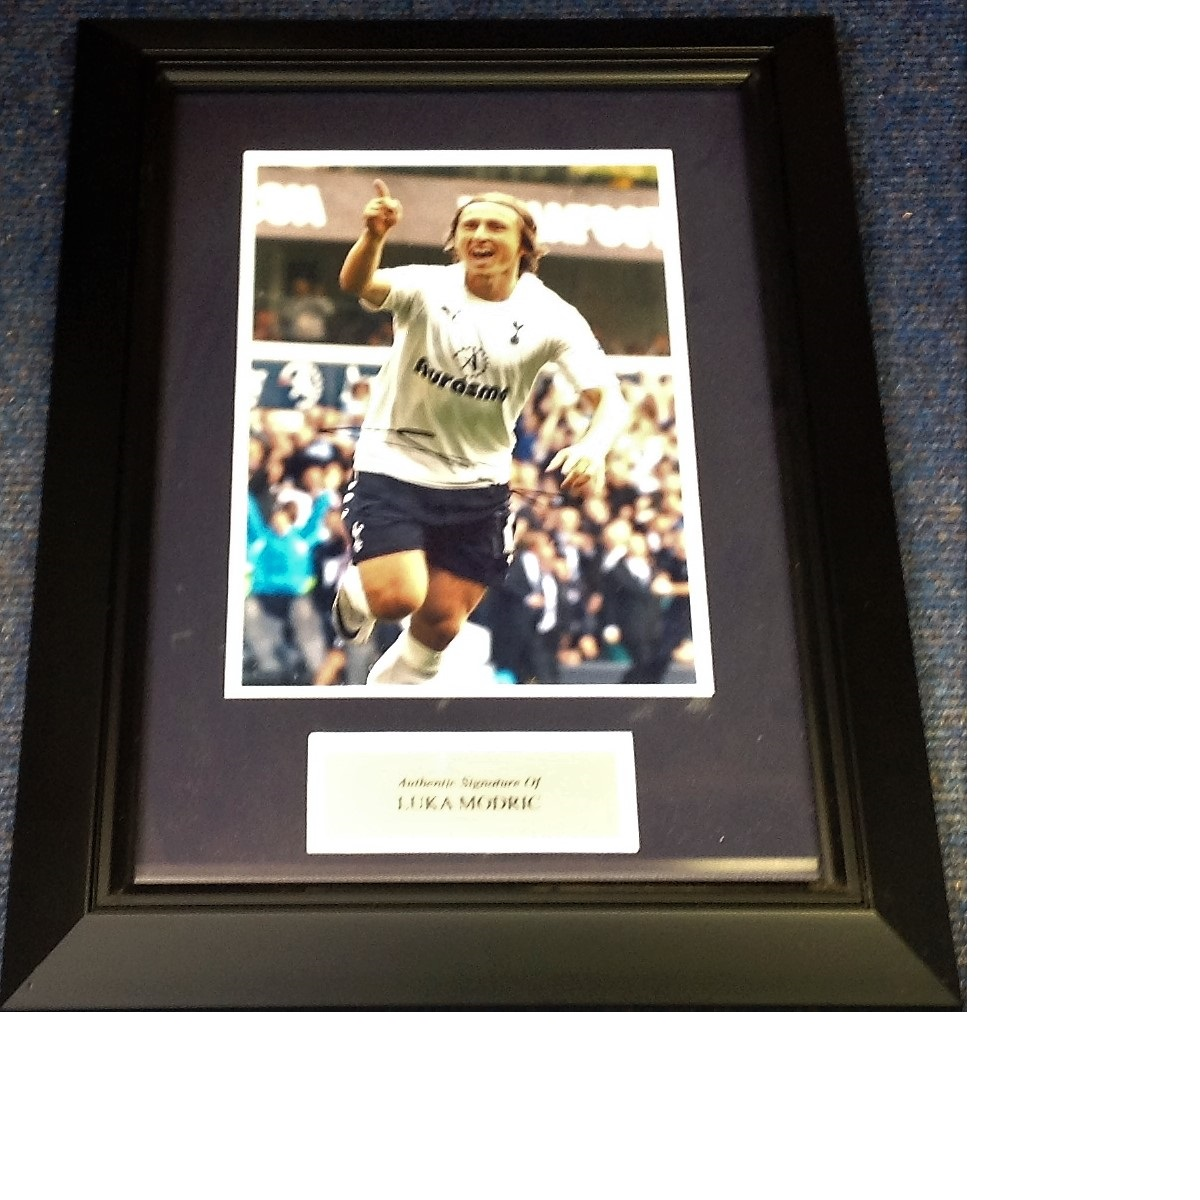 Lot 45 - Football Luka Modri 21x14 approx framed and mounted signed colour photo pictured during his time